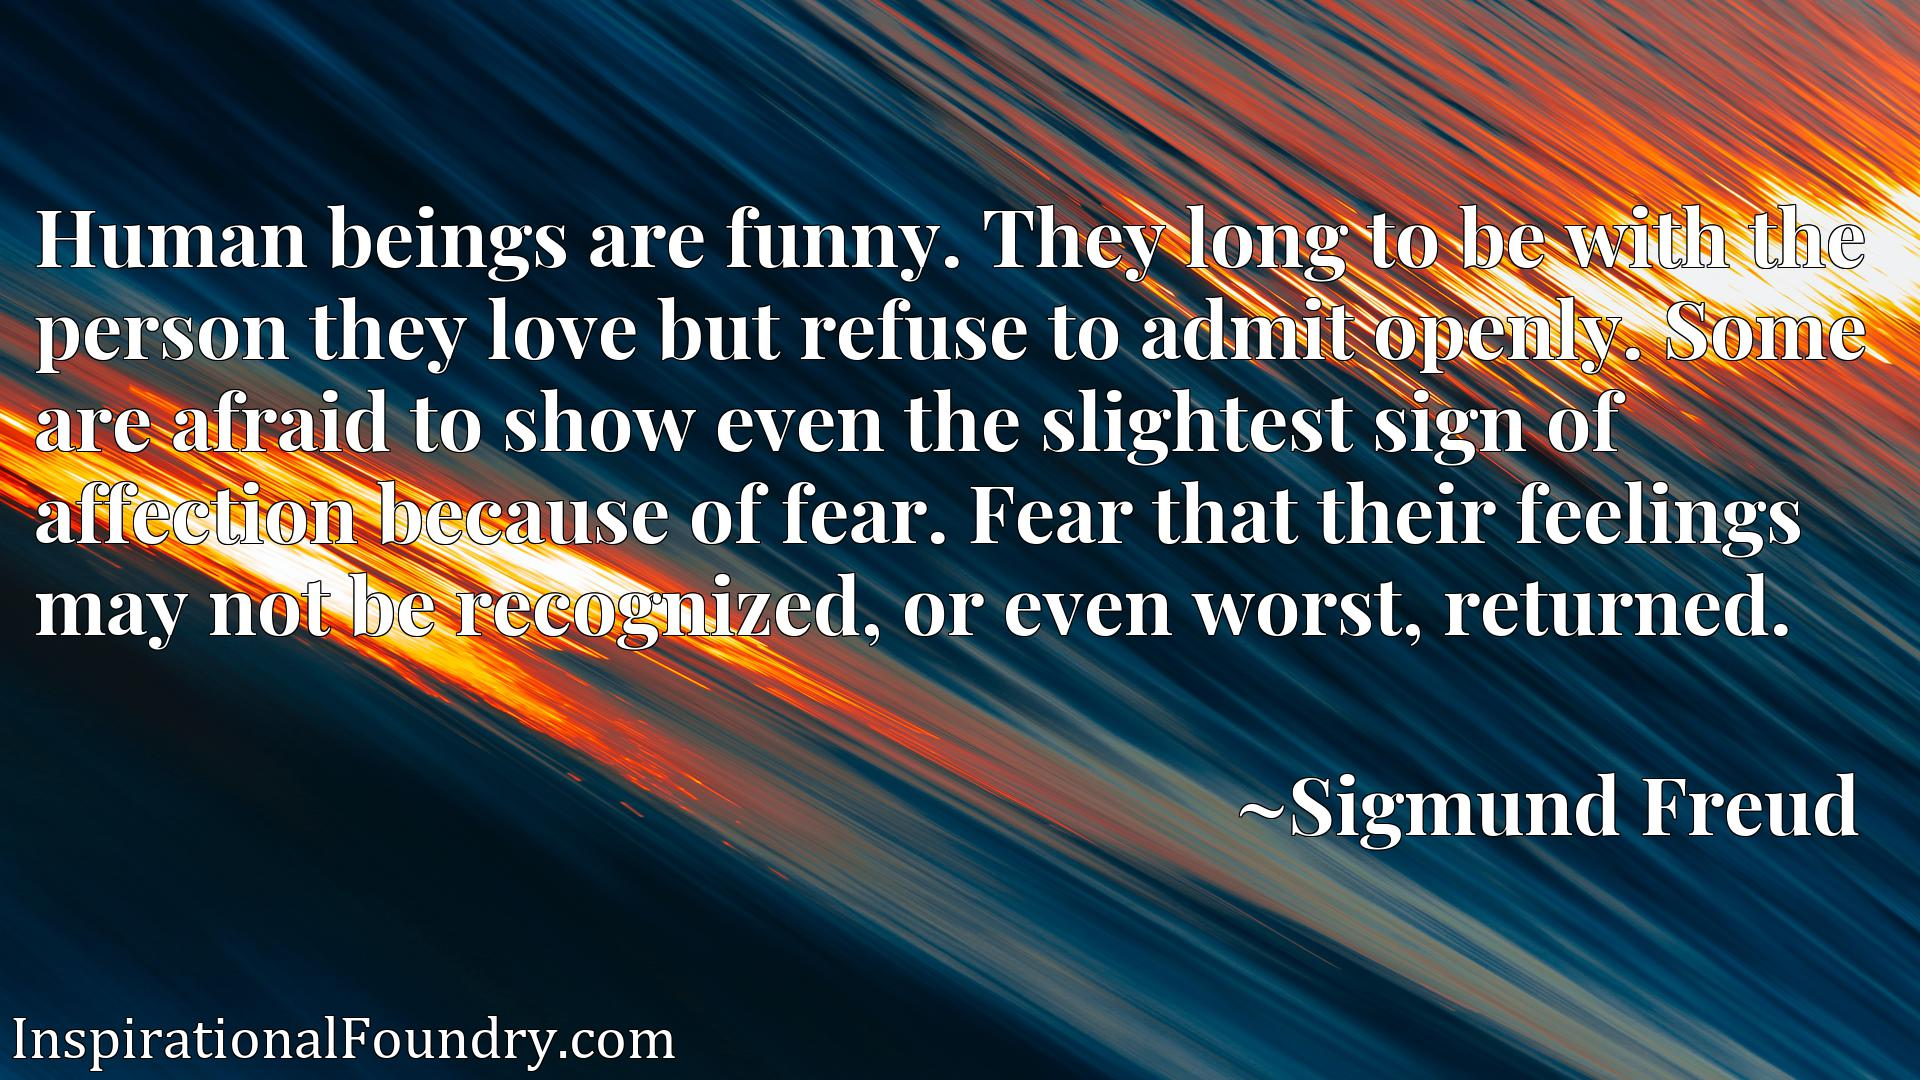 Human beings are funny. They long to be with the person they love but refuse to admit openly. Some are afraid to show even the slightest sign of affection because of fear. Fear that their feelings may not be recognized, or even worst, returned.